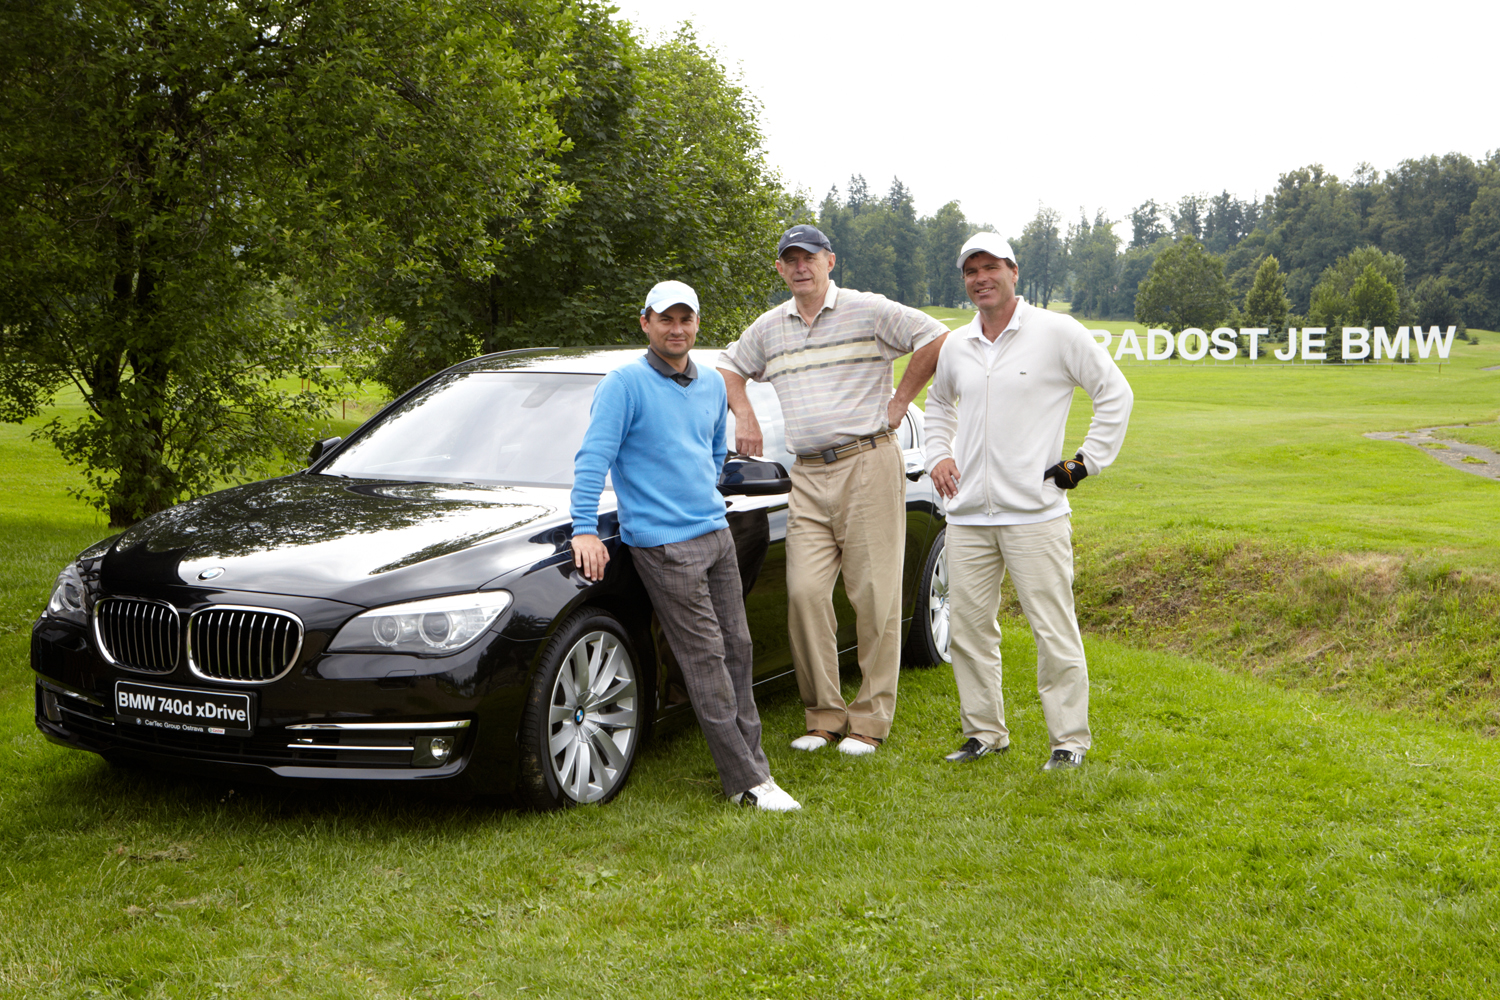 80541465cartec-group-bmw-golf-cup-2013-09